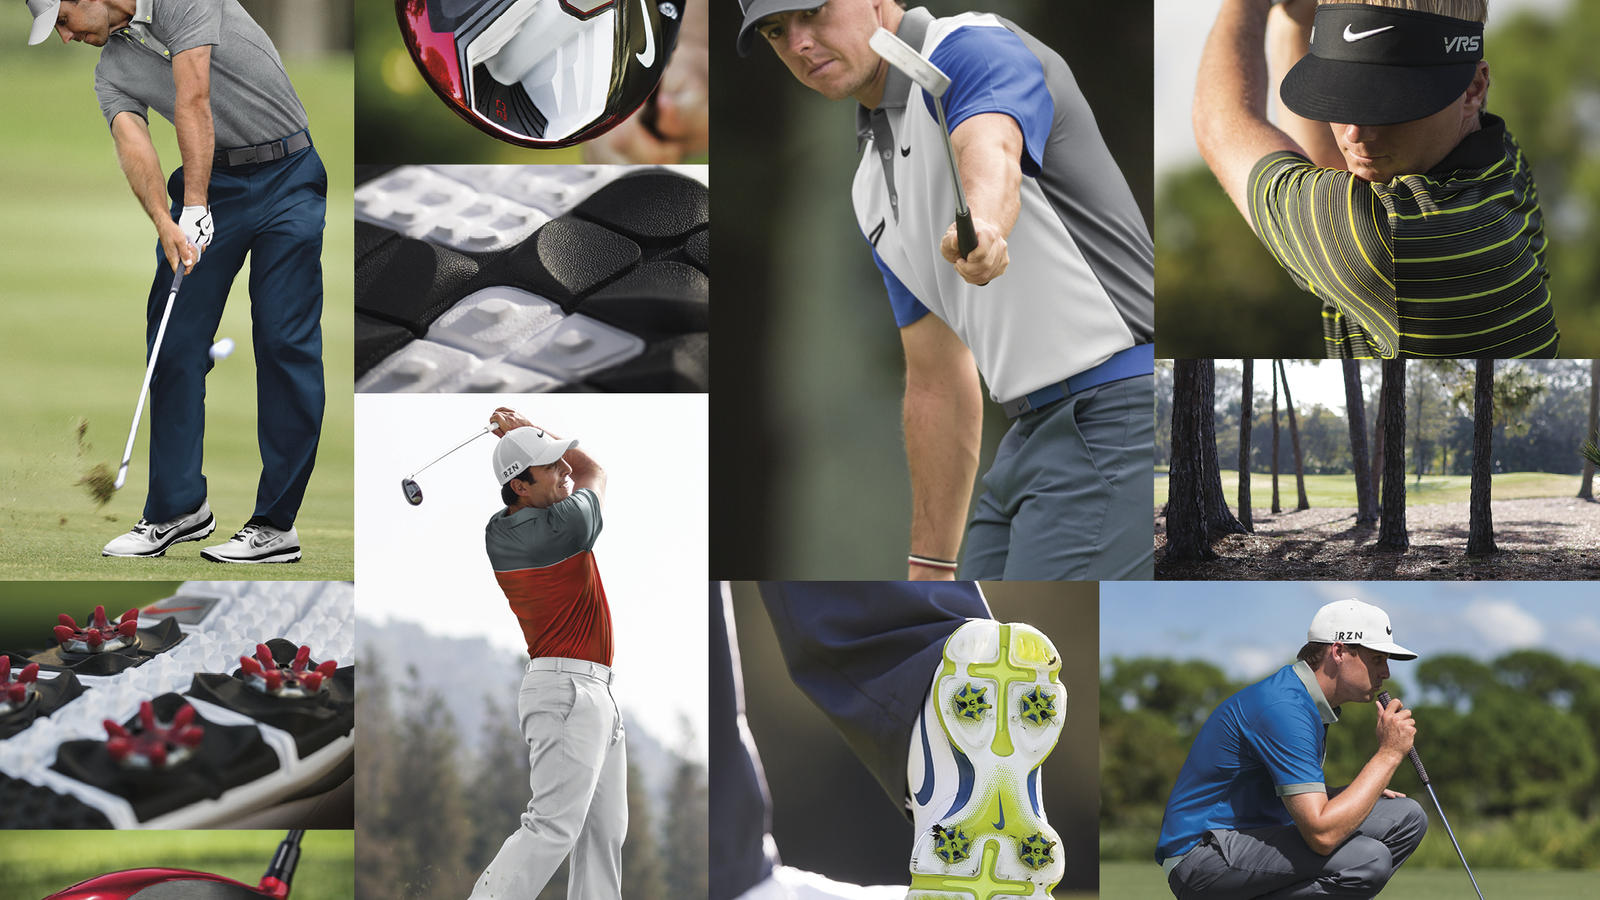 2014 US Open Nike Athletes